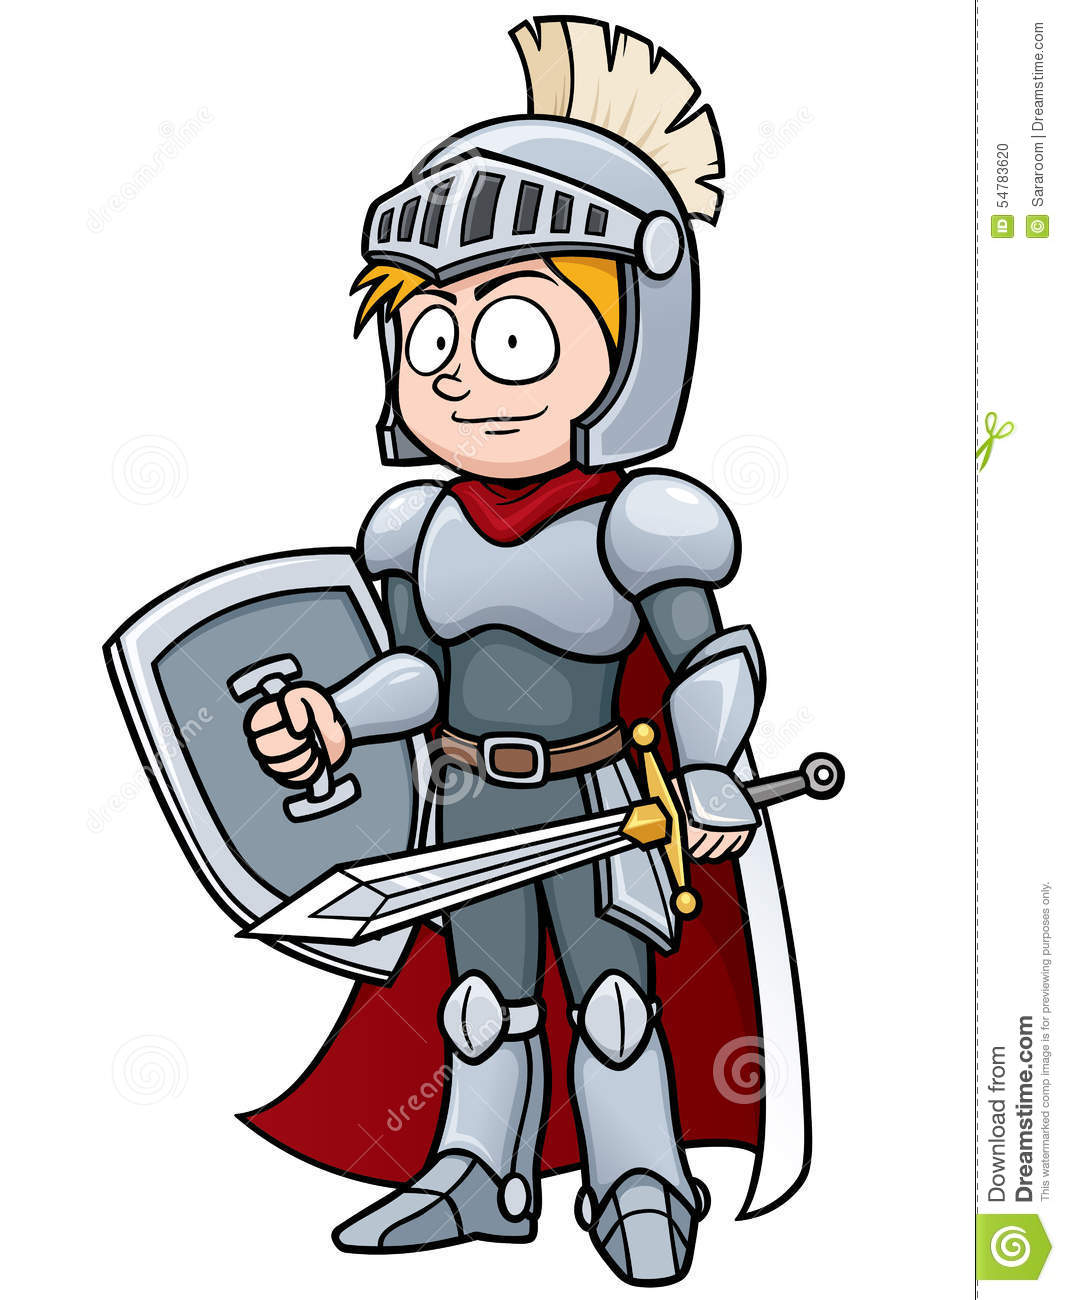 Knight Stock Vector - Image: 54783620